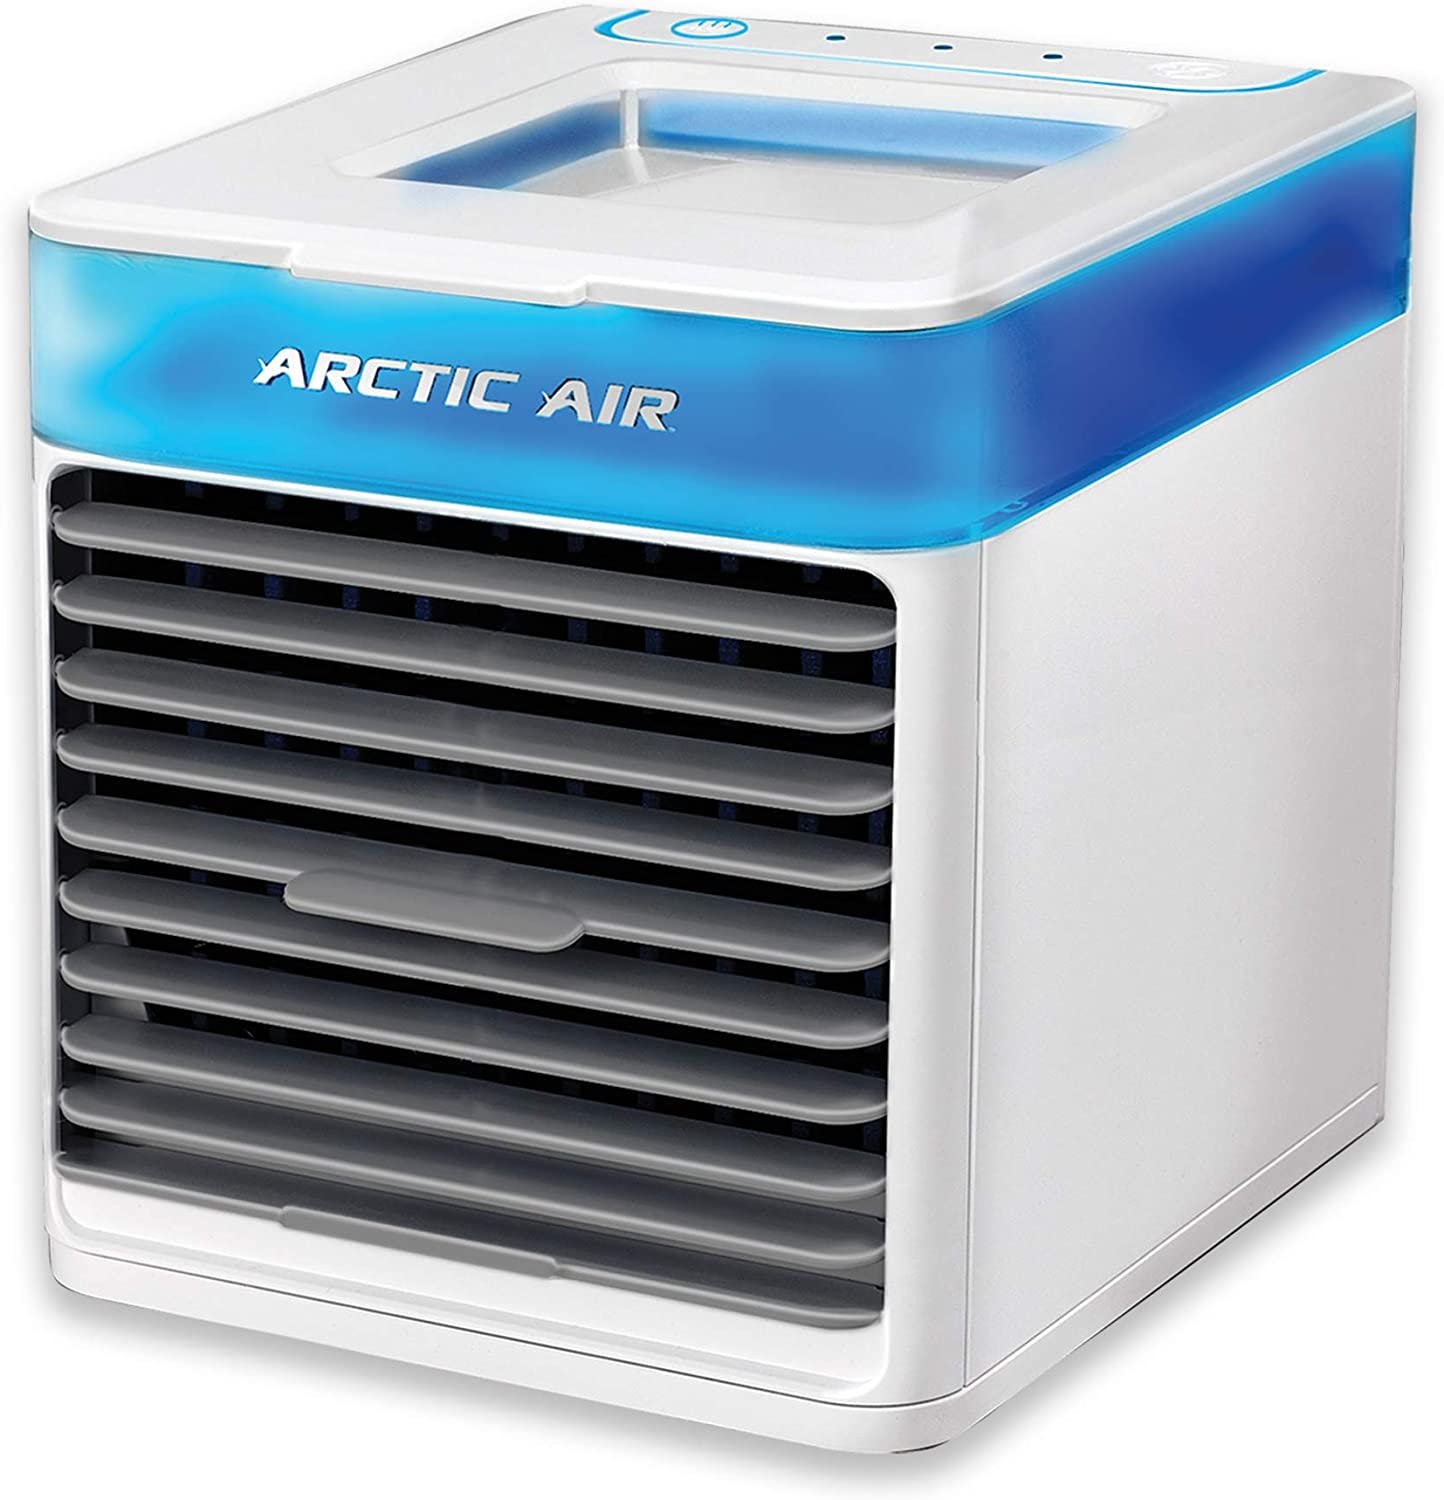 Ontel Arctic Air Pure Chill Evaporative Air Cooler with UV Light